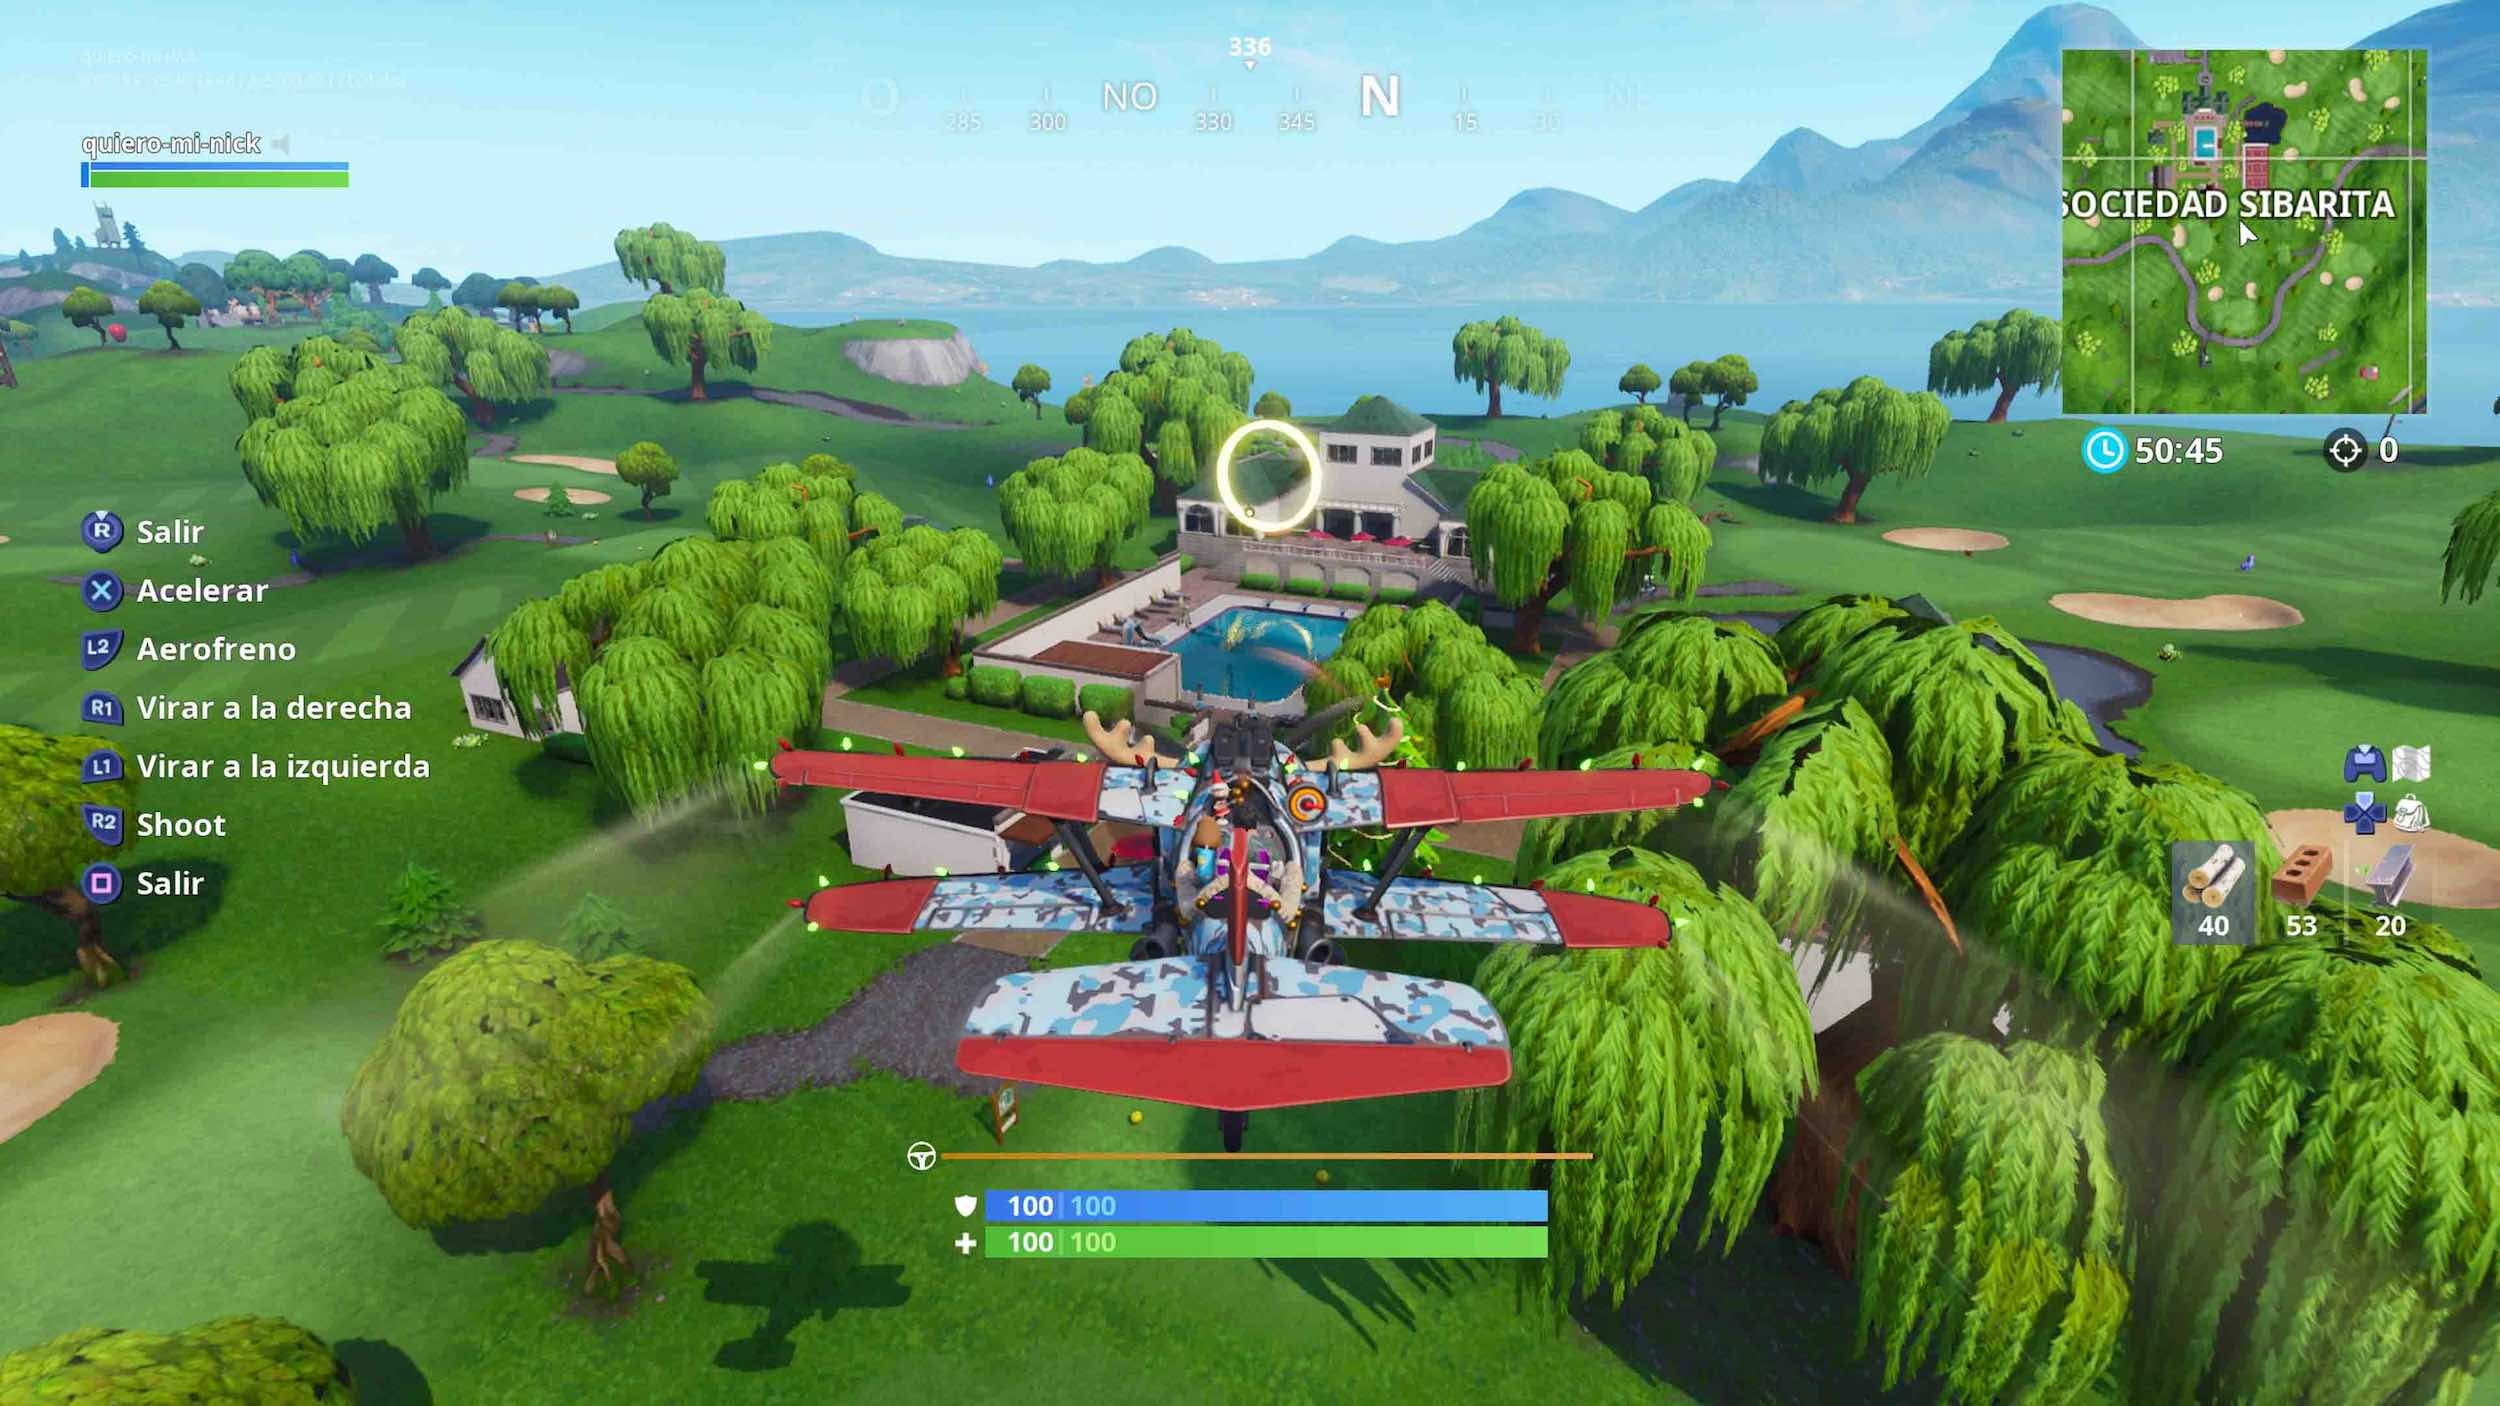 Take A Stormwind X 4 Plane Through The Golden Rings In Fortnite 14